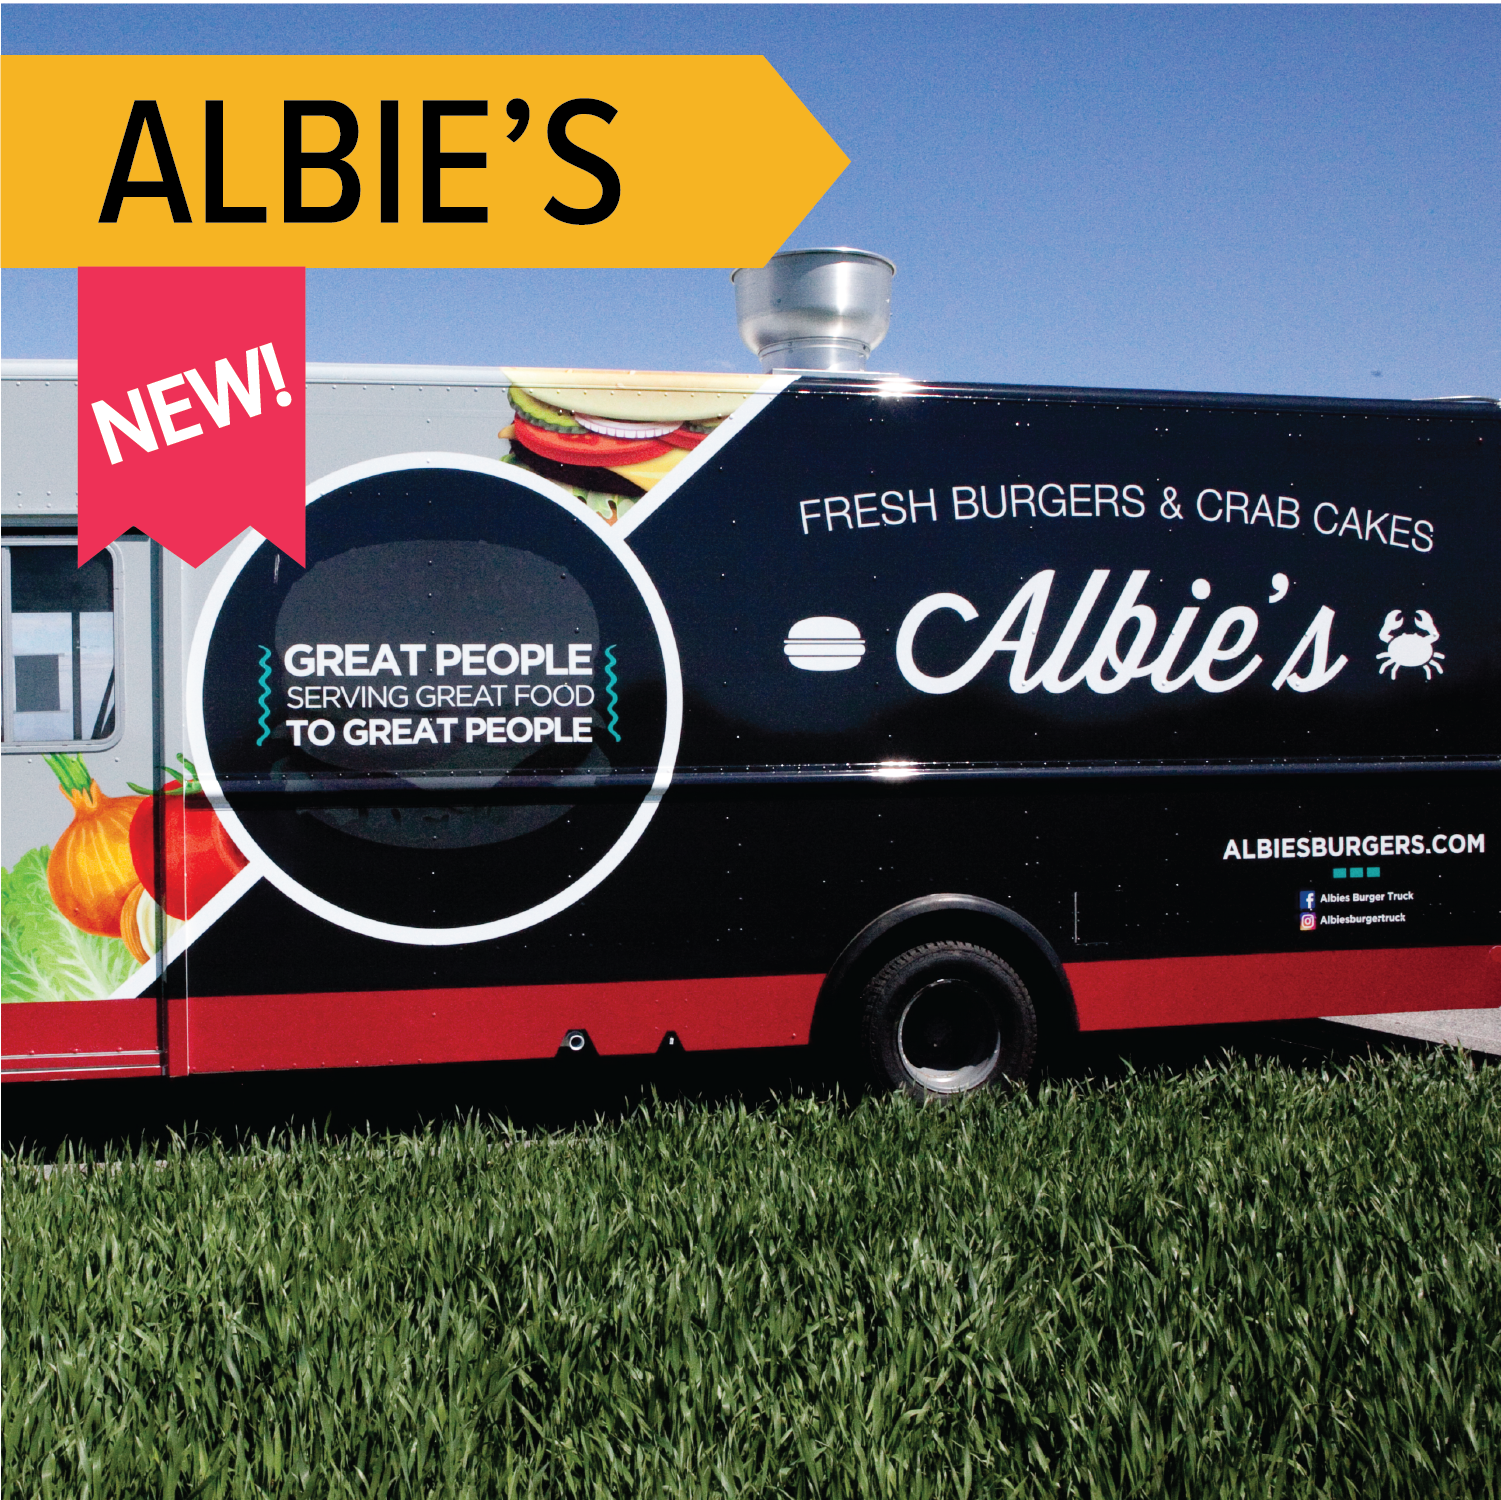 Albie's Burger Truck   Hand crafted burgers and crab cakes makes for a fun twist on surf n' turf